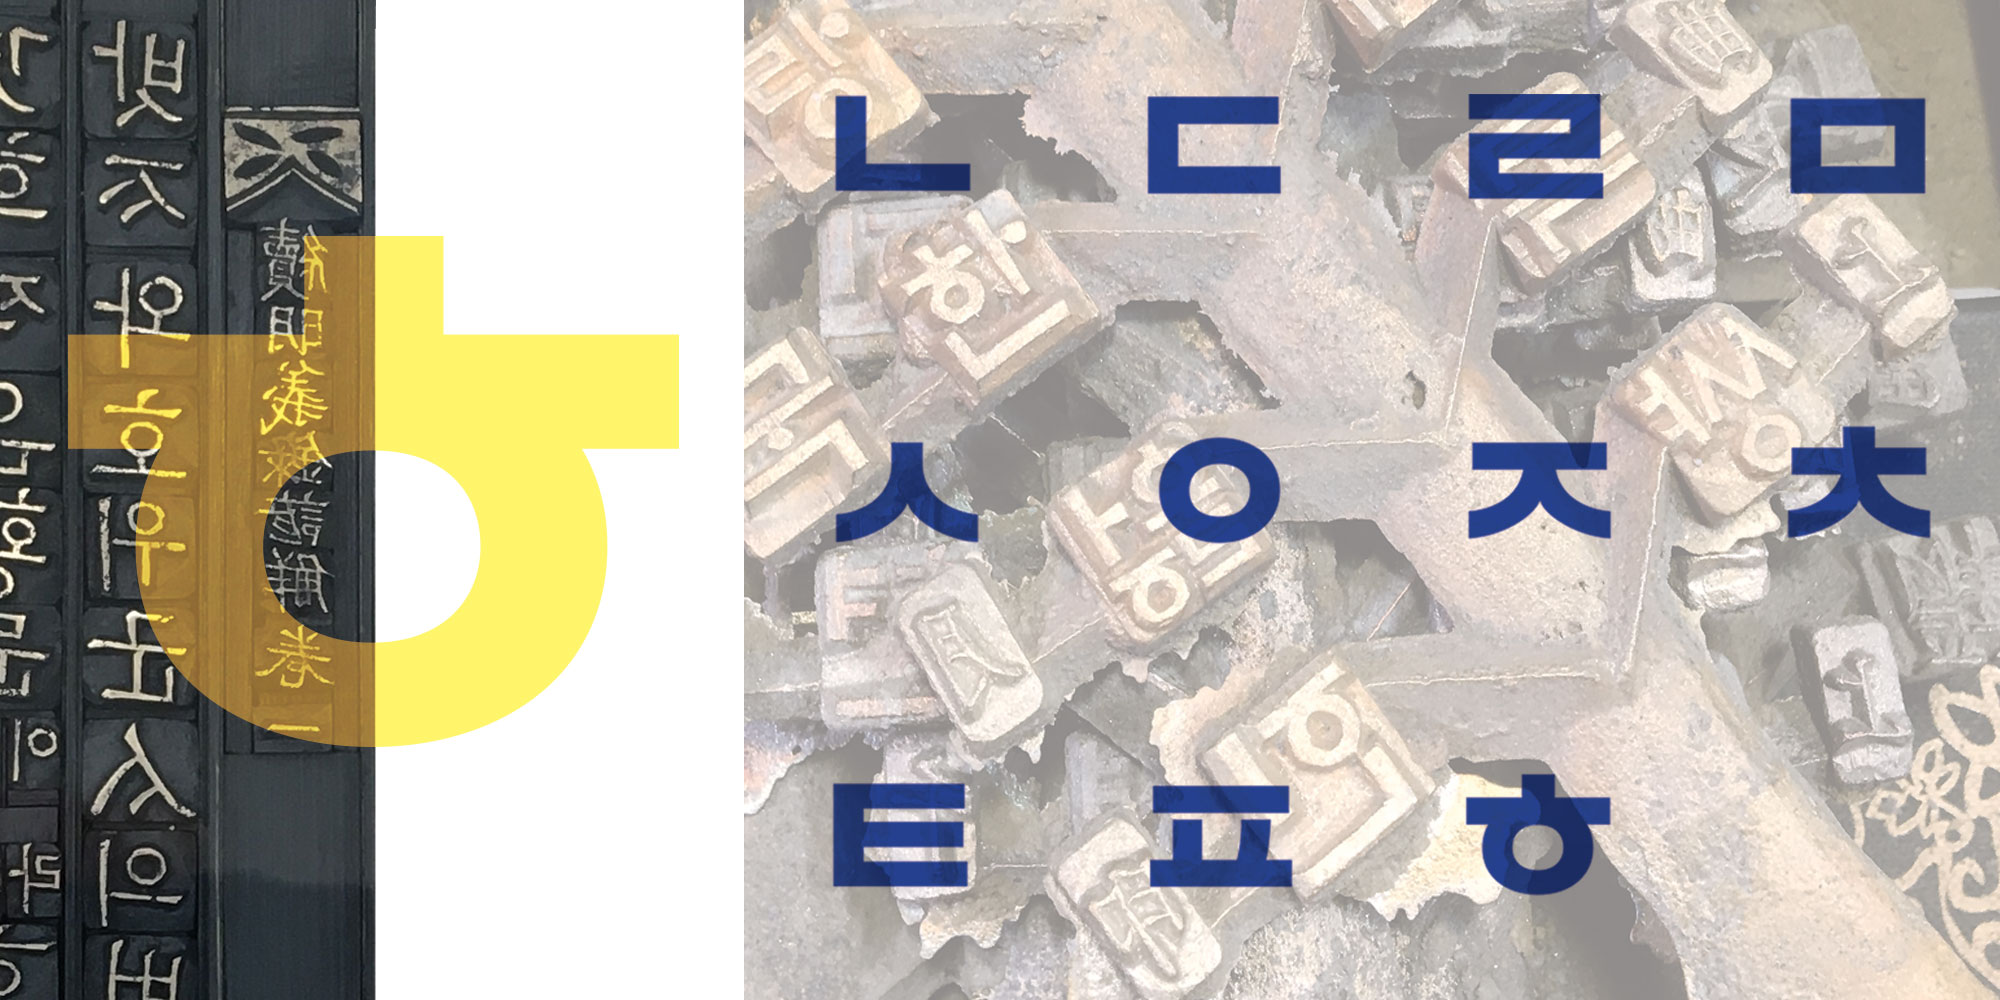 Survey of Korean Calligraphy, Typography, and Print